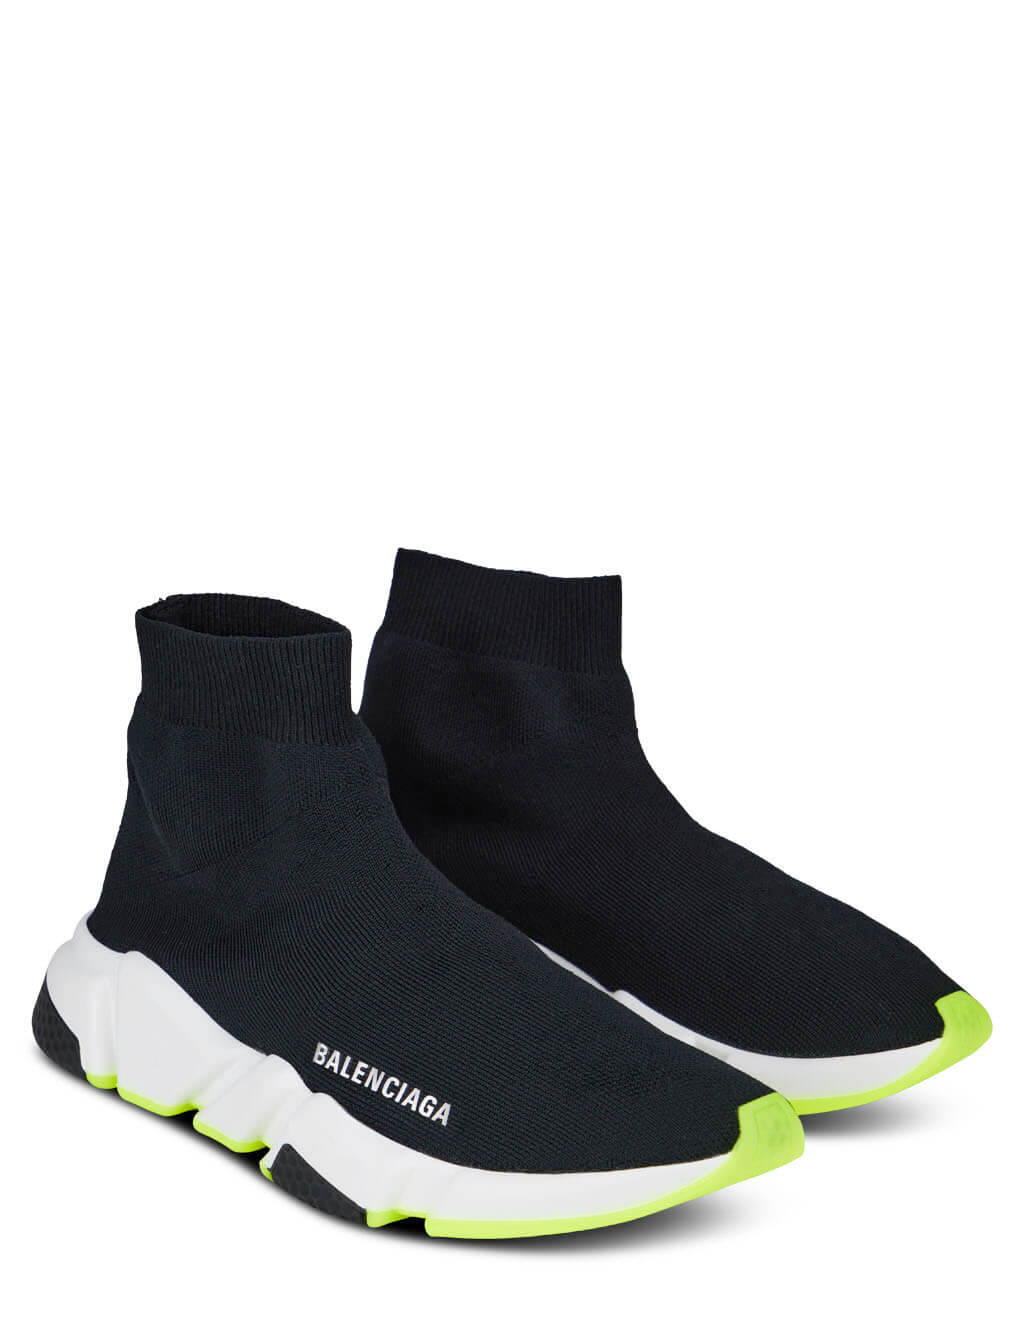 Women's Balenciaga Speed Sneakers in Black/White/Neon Green - 587280W2DB91016